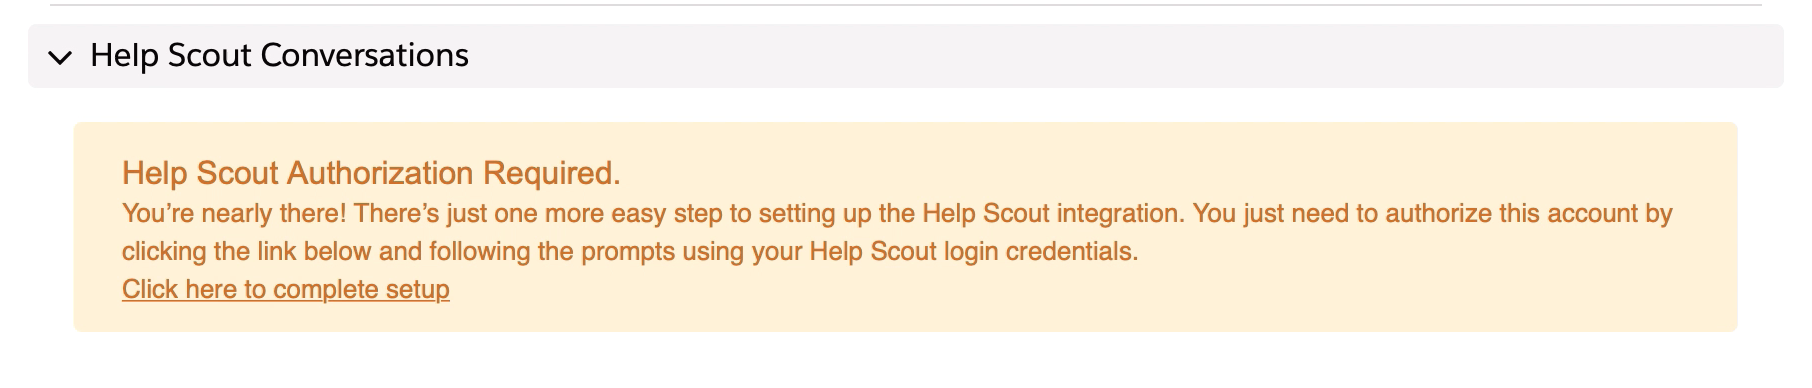 Salesforce - Help Scout Support